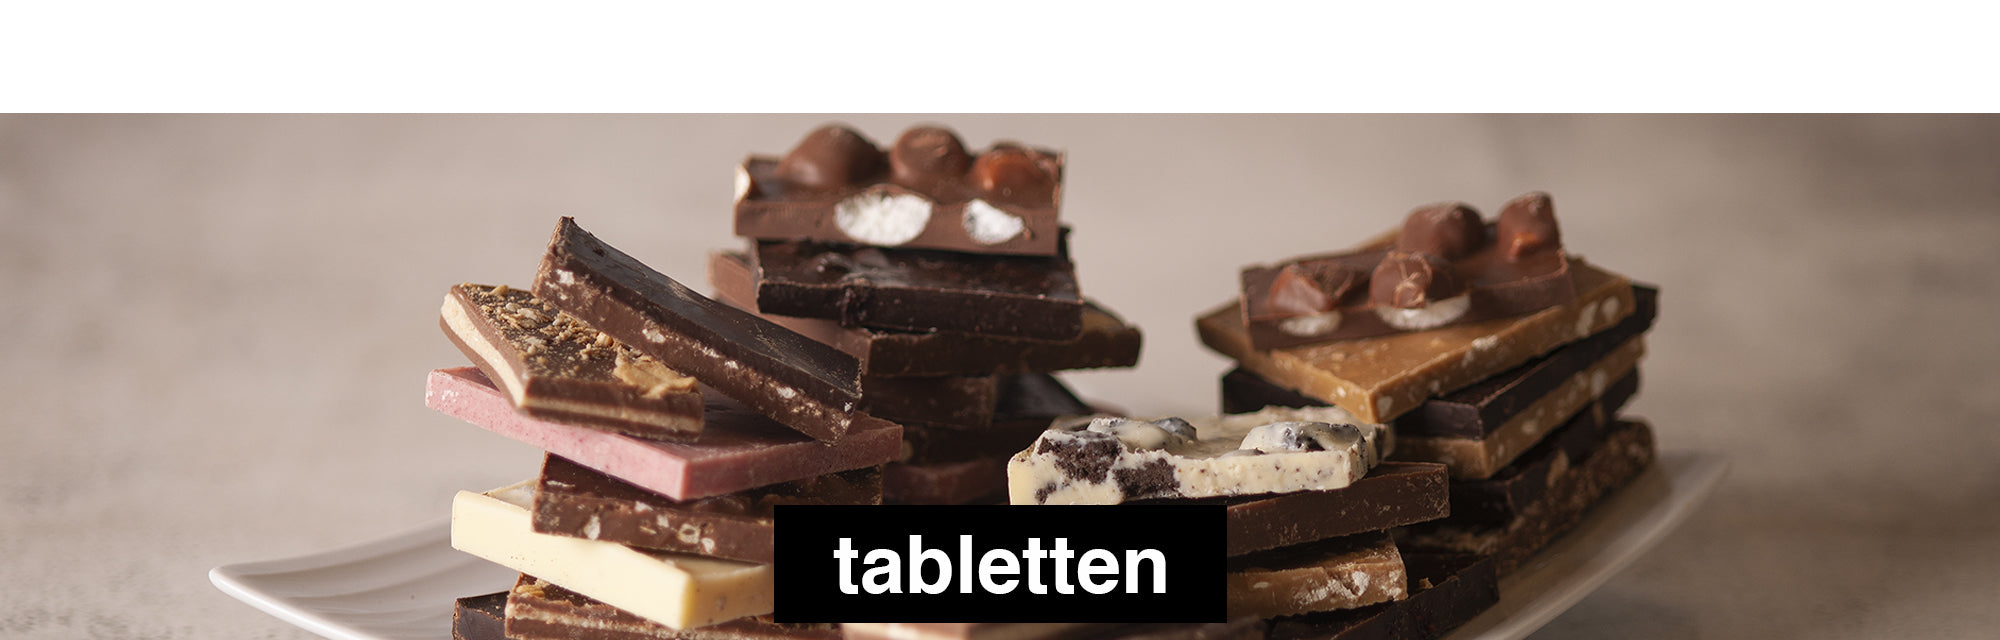 Tabletten - Chocolates en Tabletas